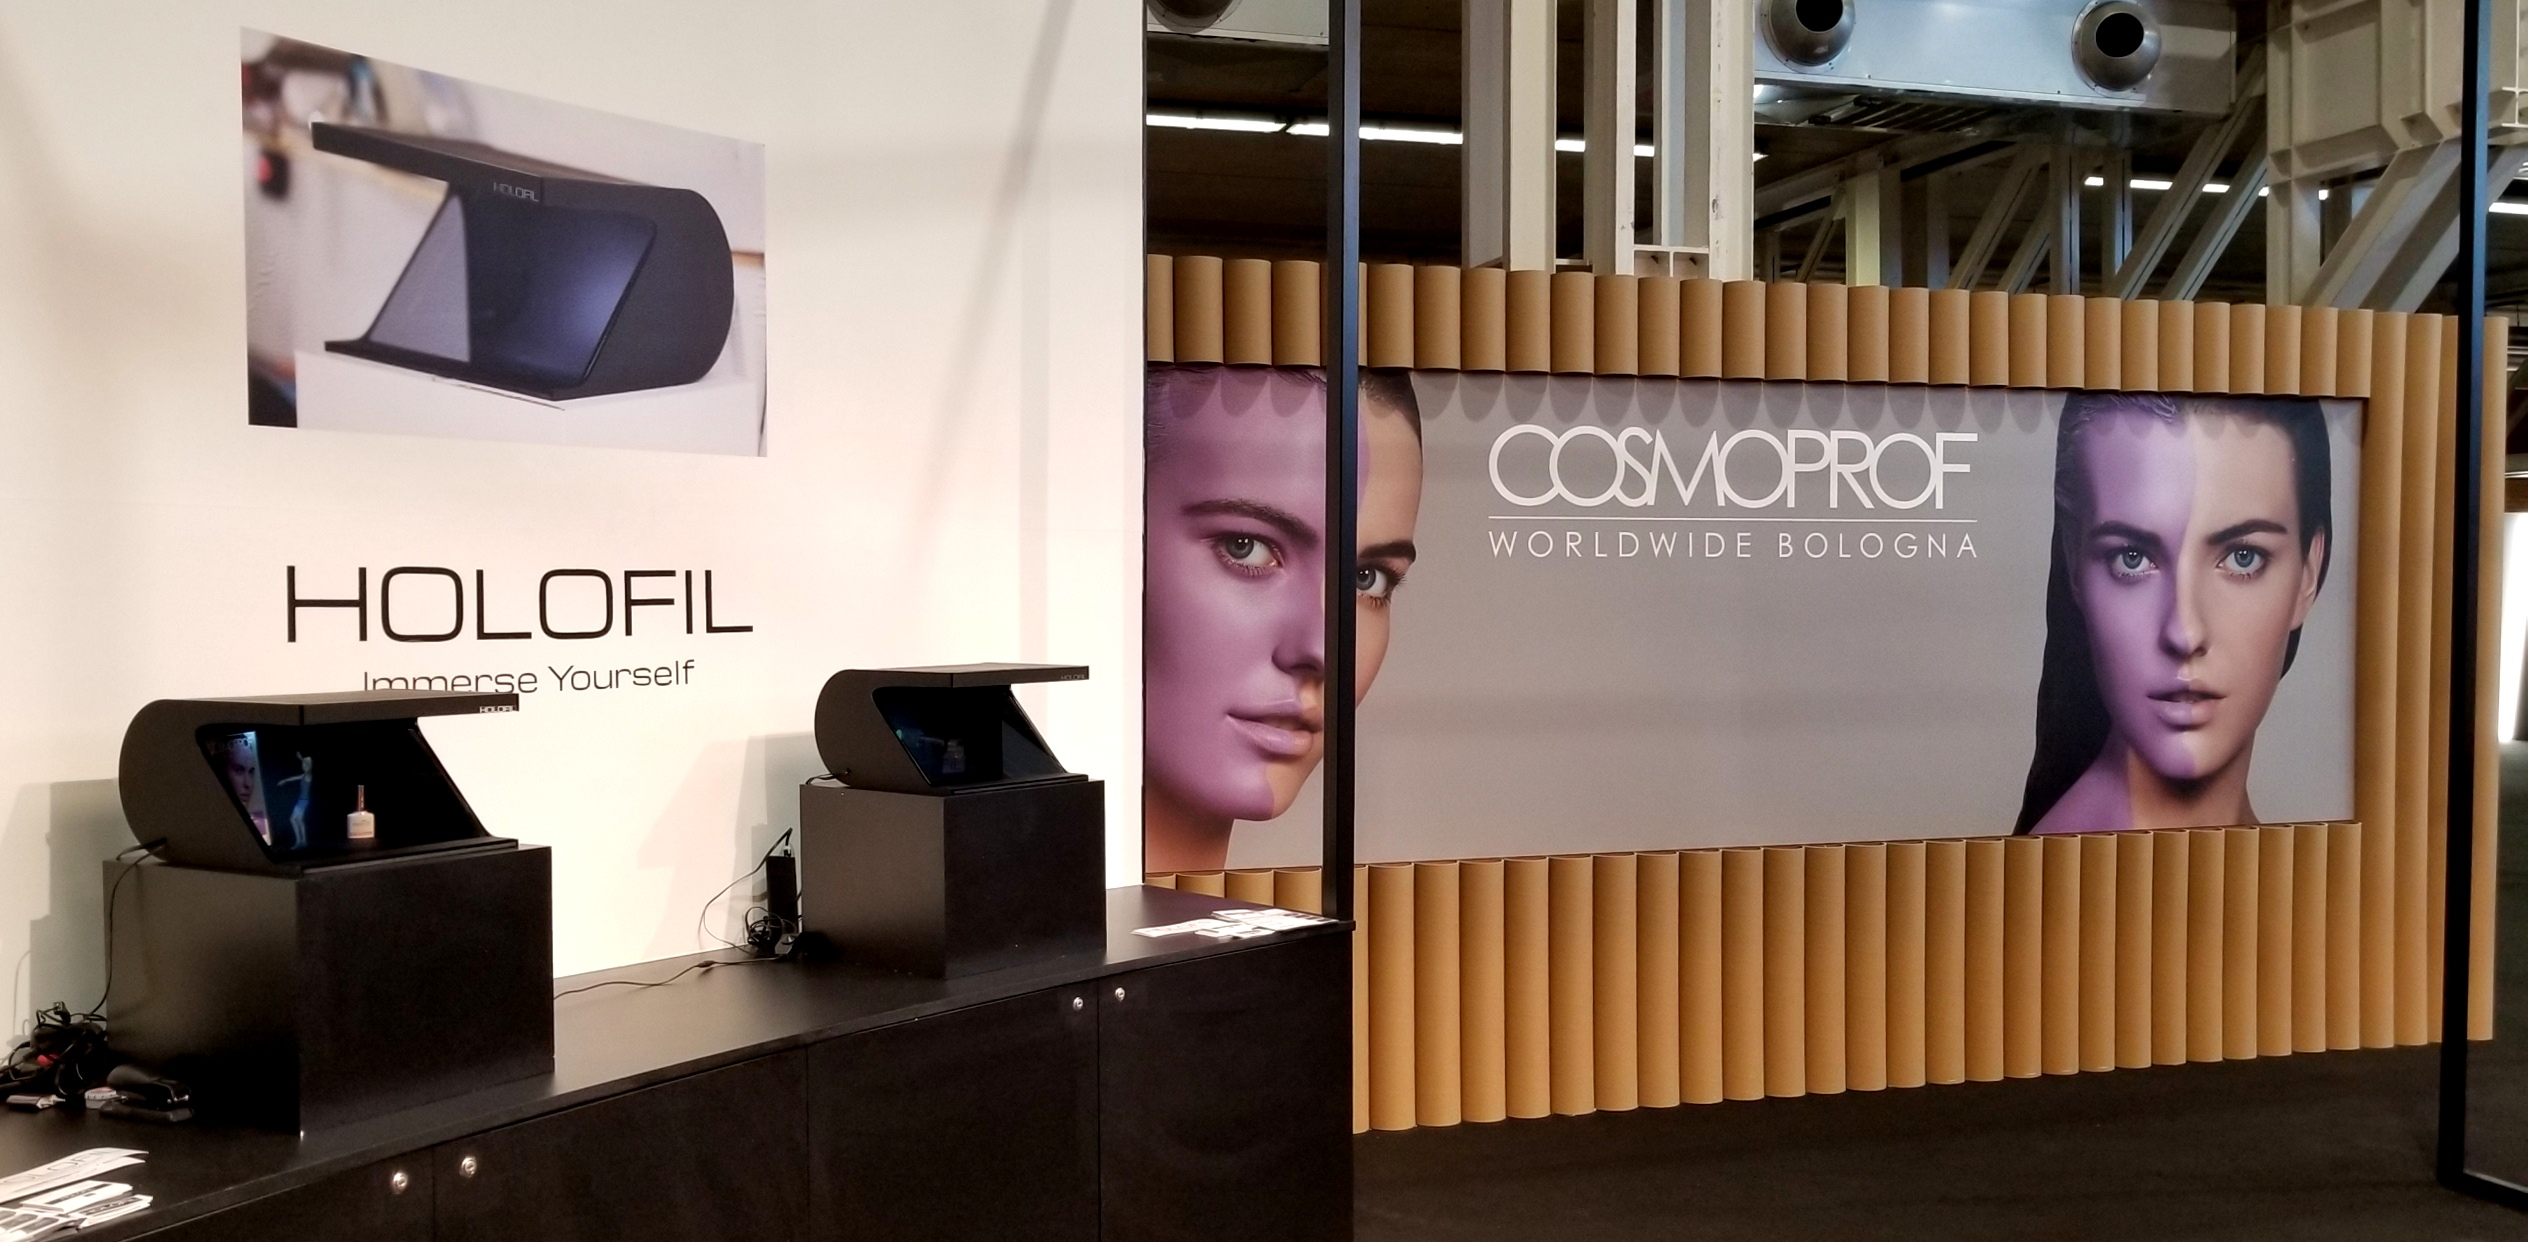 Cosmoprof setup in Bologna, Italy